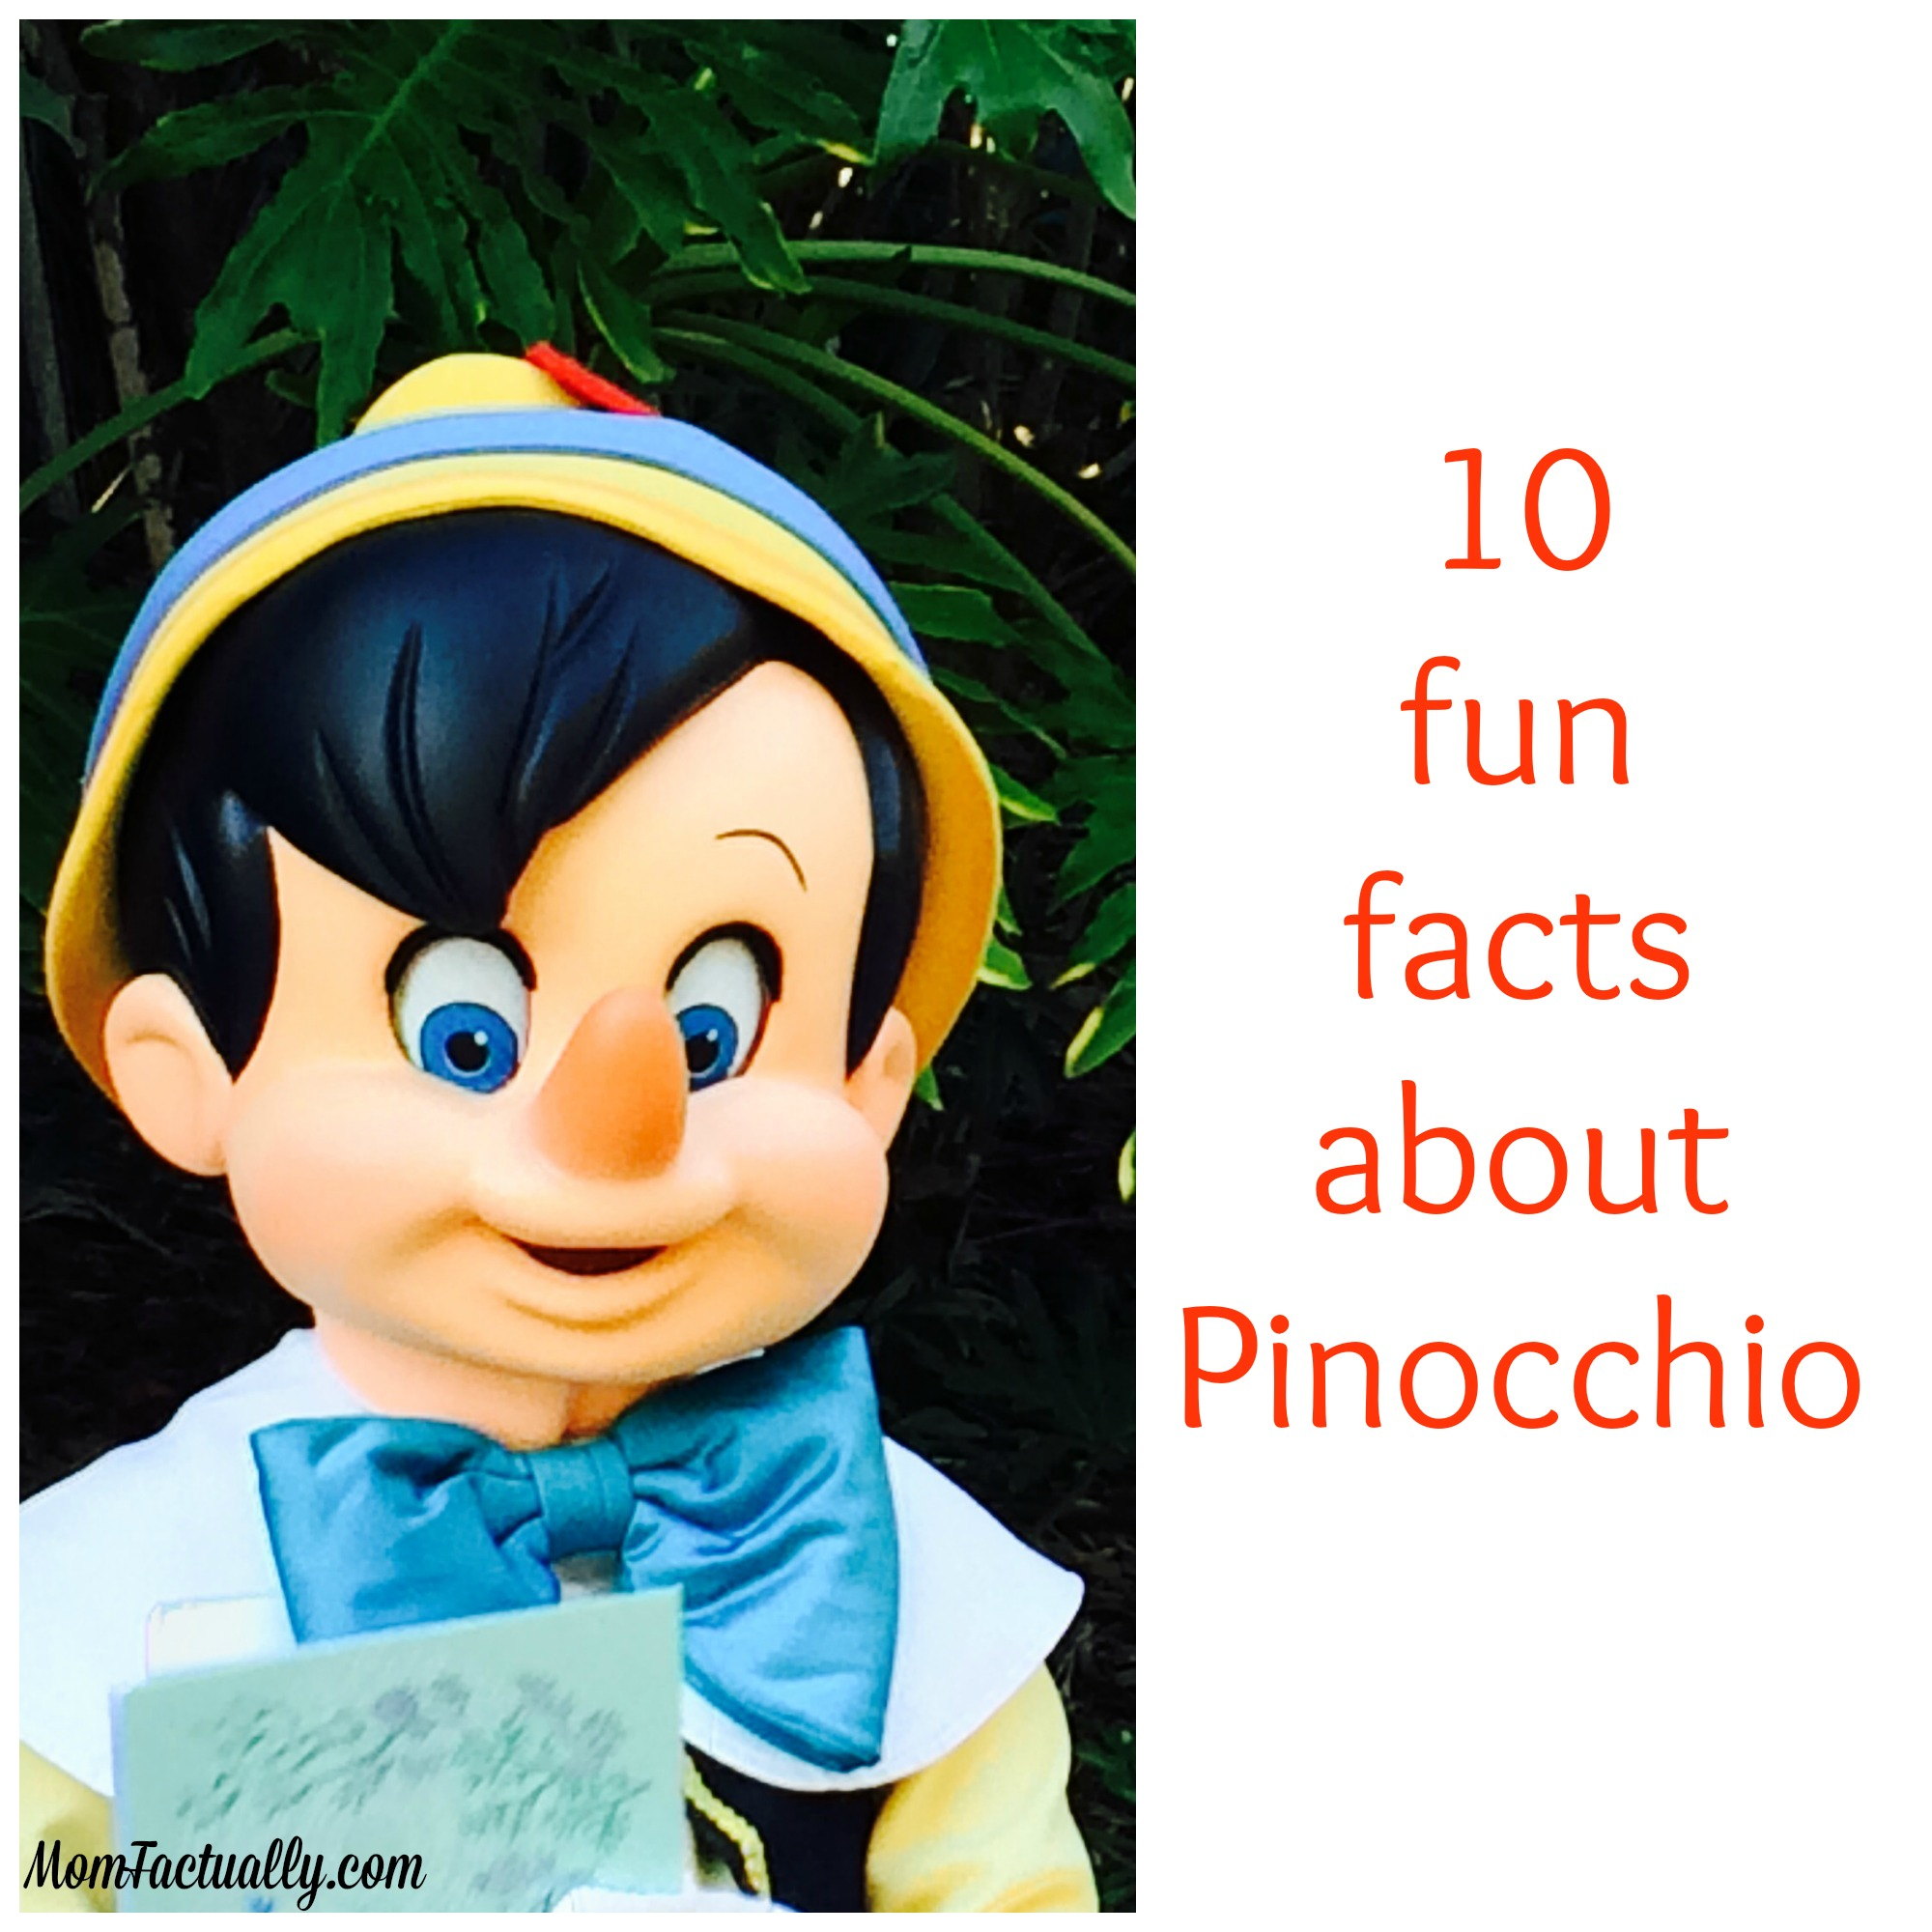 The walt disney film pinocchio was released in february 1940 making